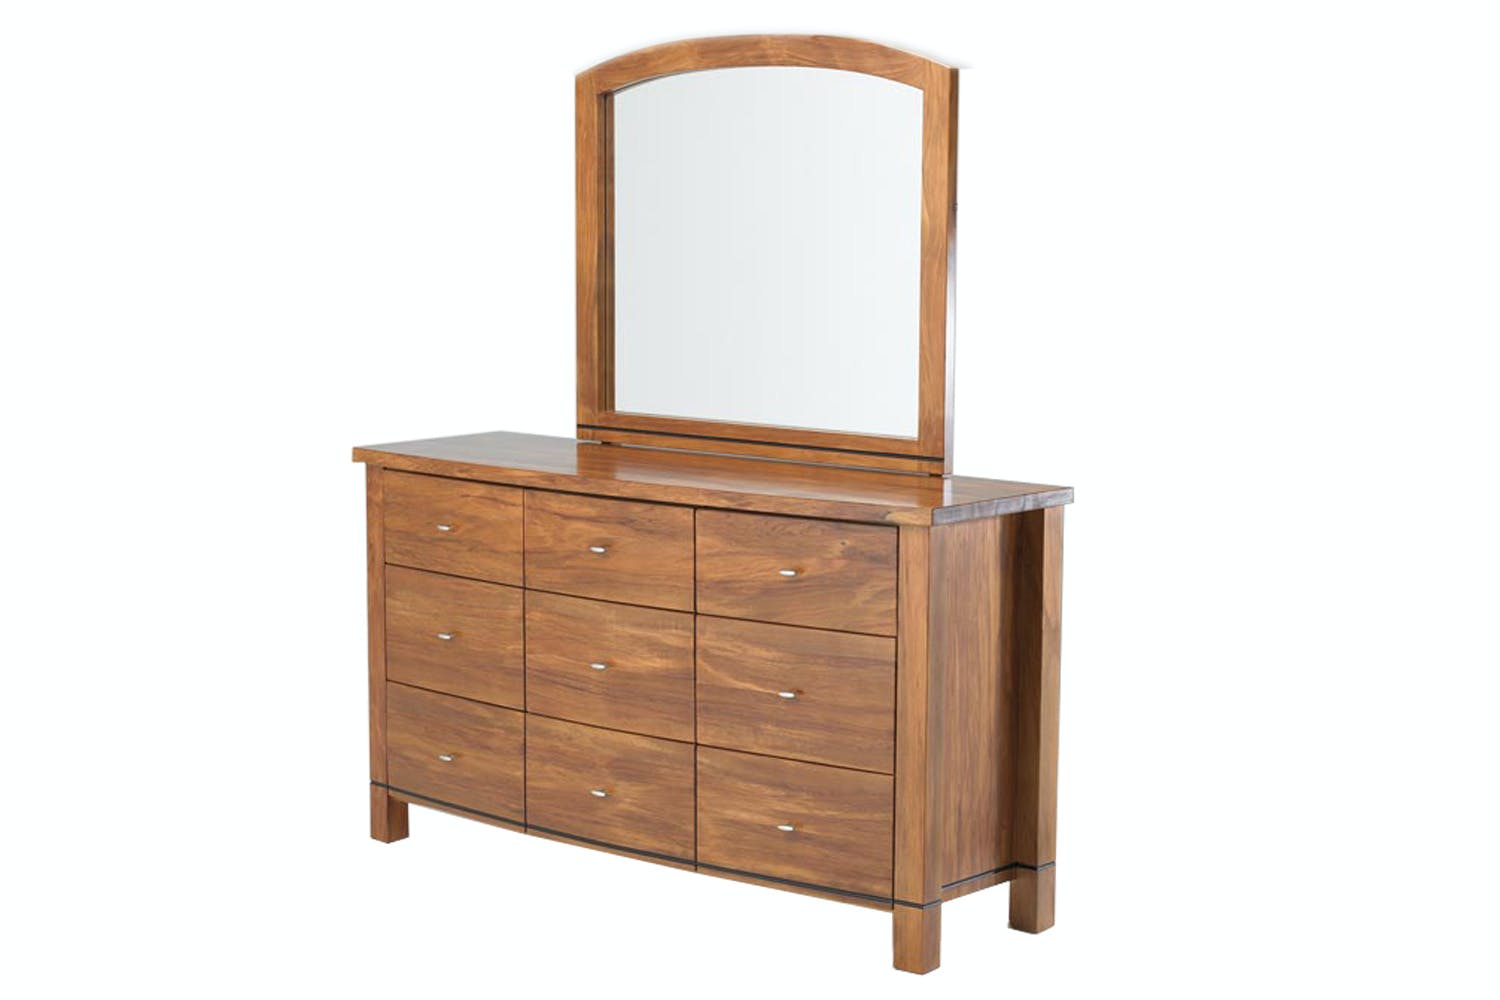 Vision Rimu 9 Drawer Dresser And Mirror By Ezirest Furniture Harvey Norman New Zealand